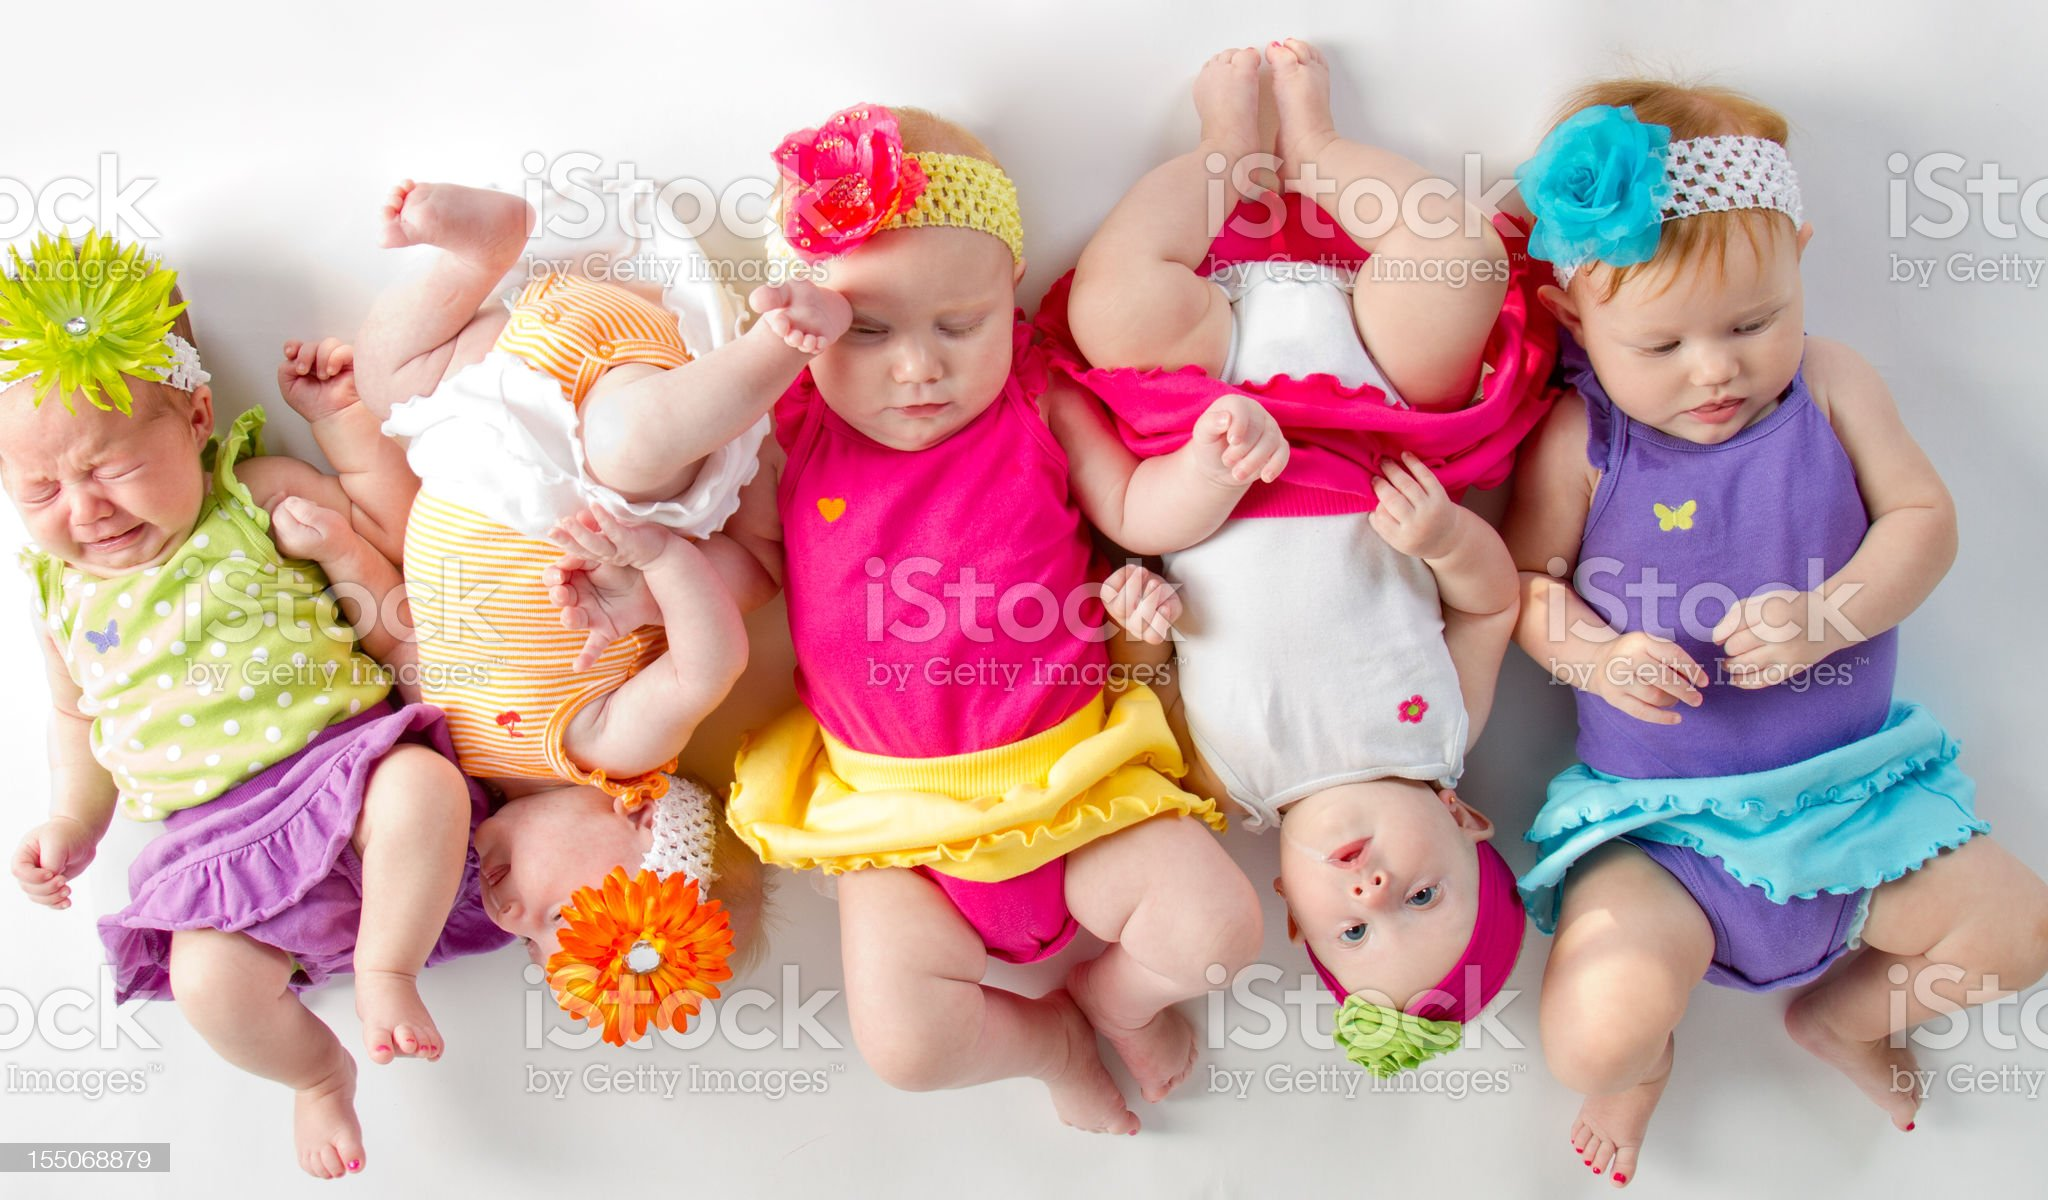 Candid Babies royalty-free stock photo